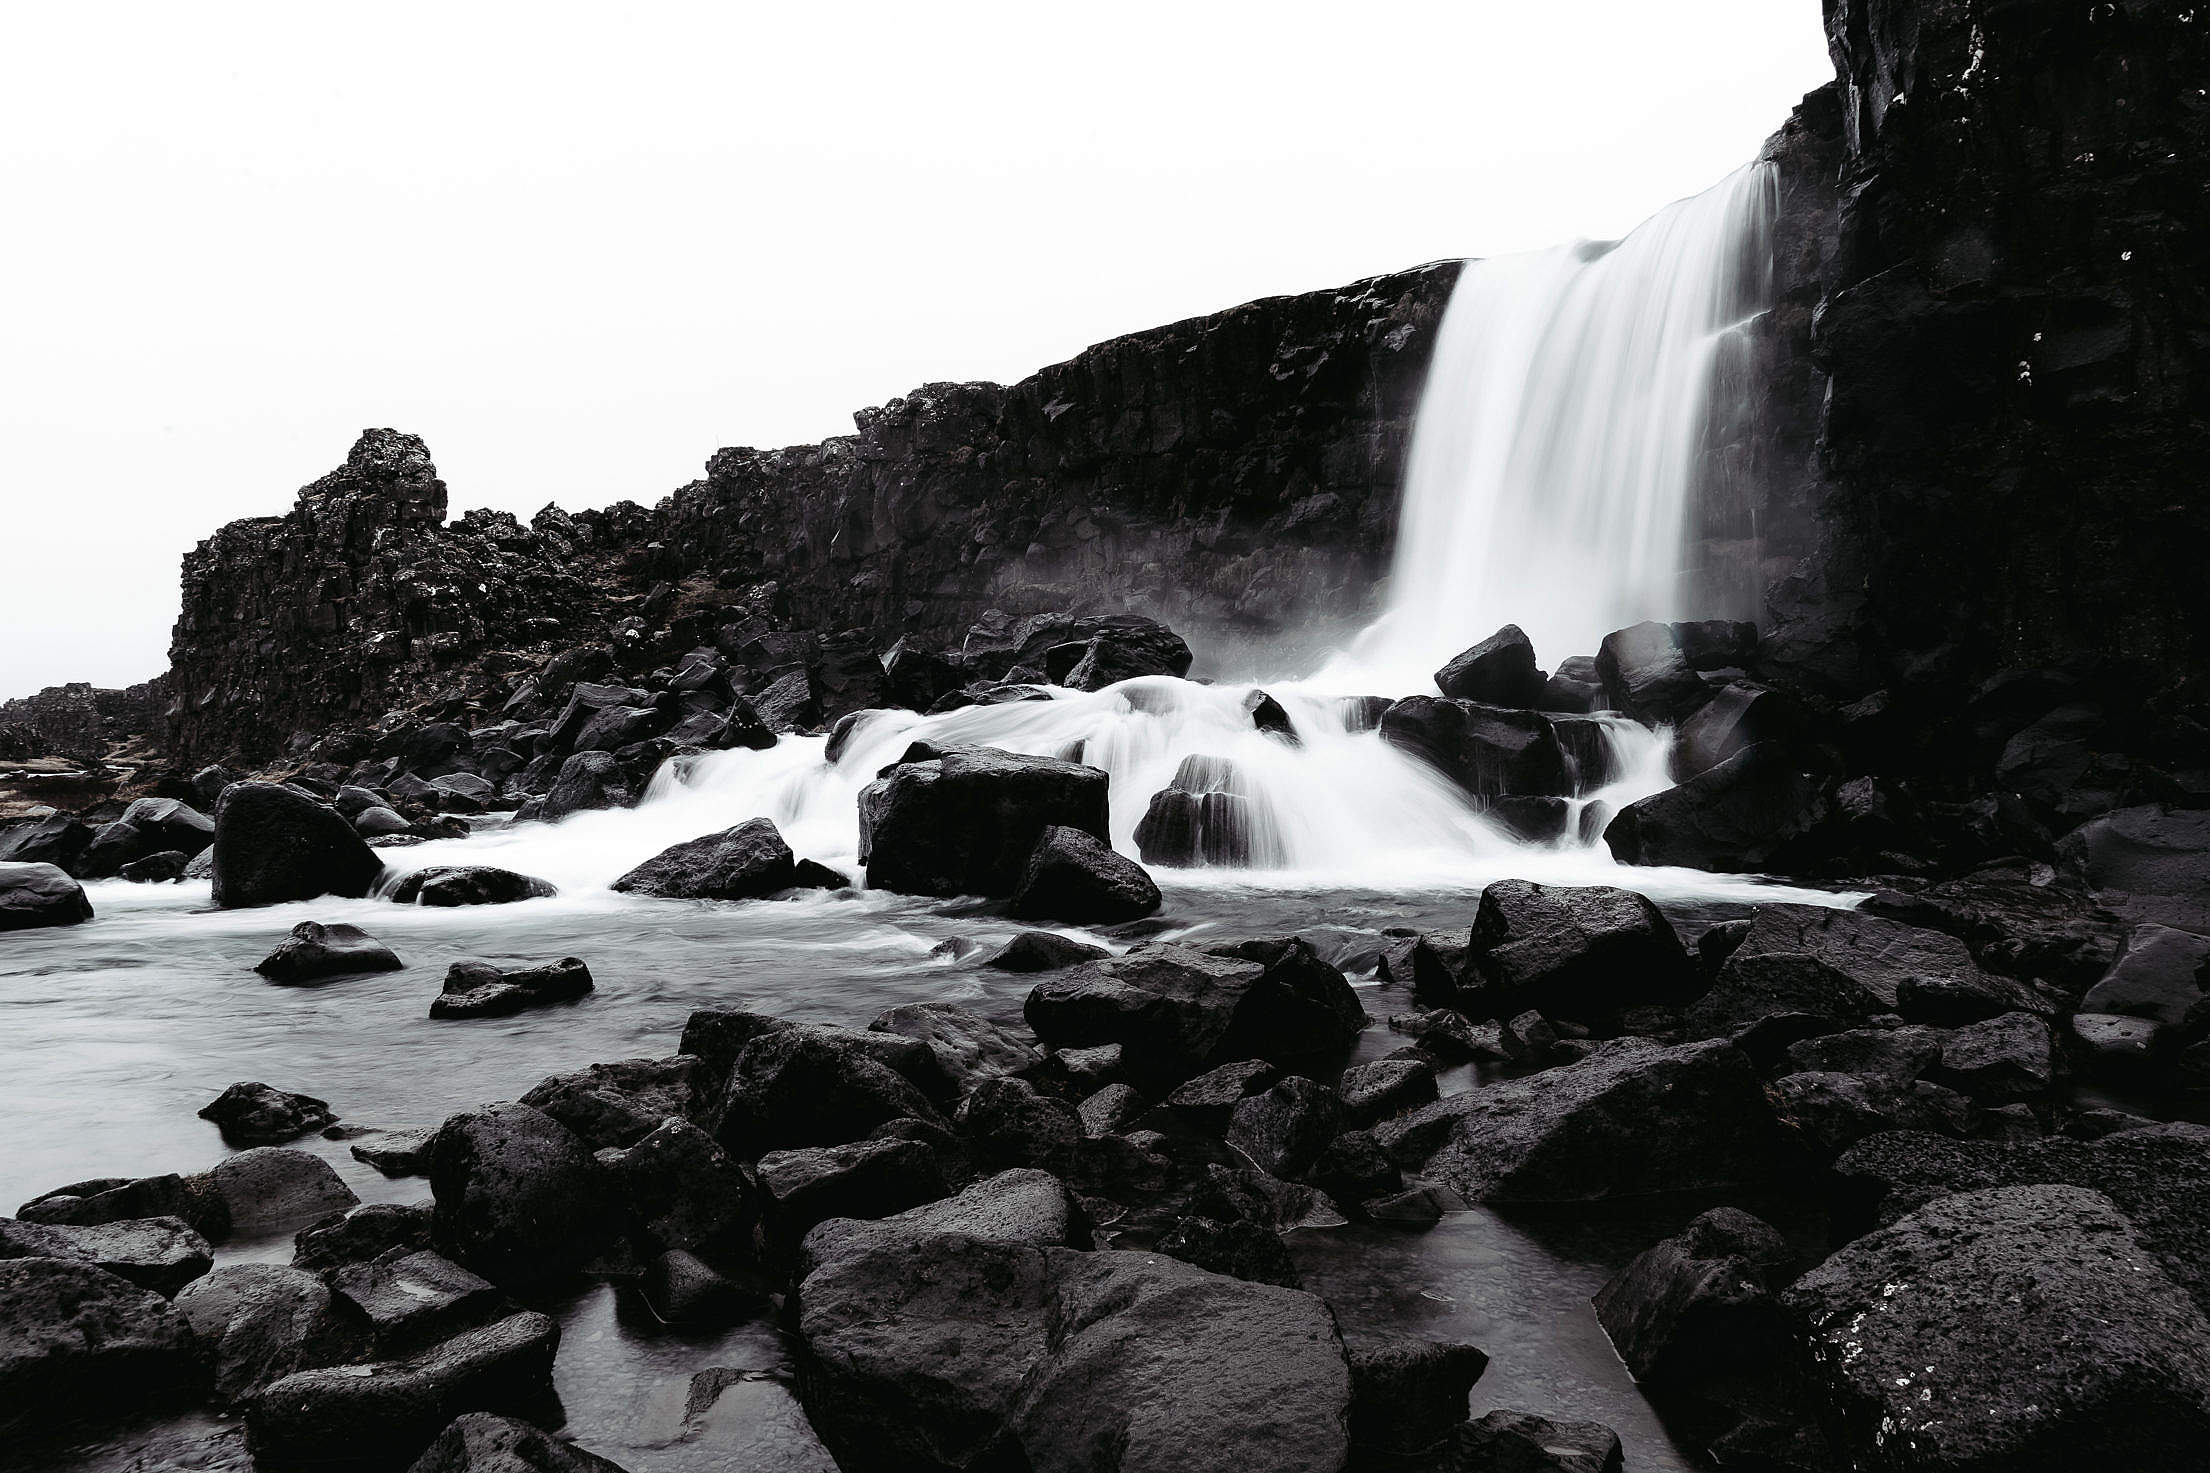 Icelandic Öxarárfoss Waterfall with Black Rocks Free Stock Photo